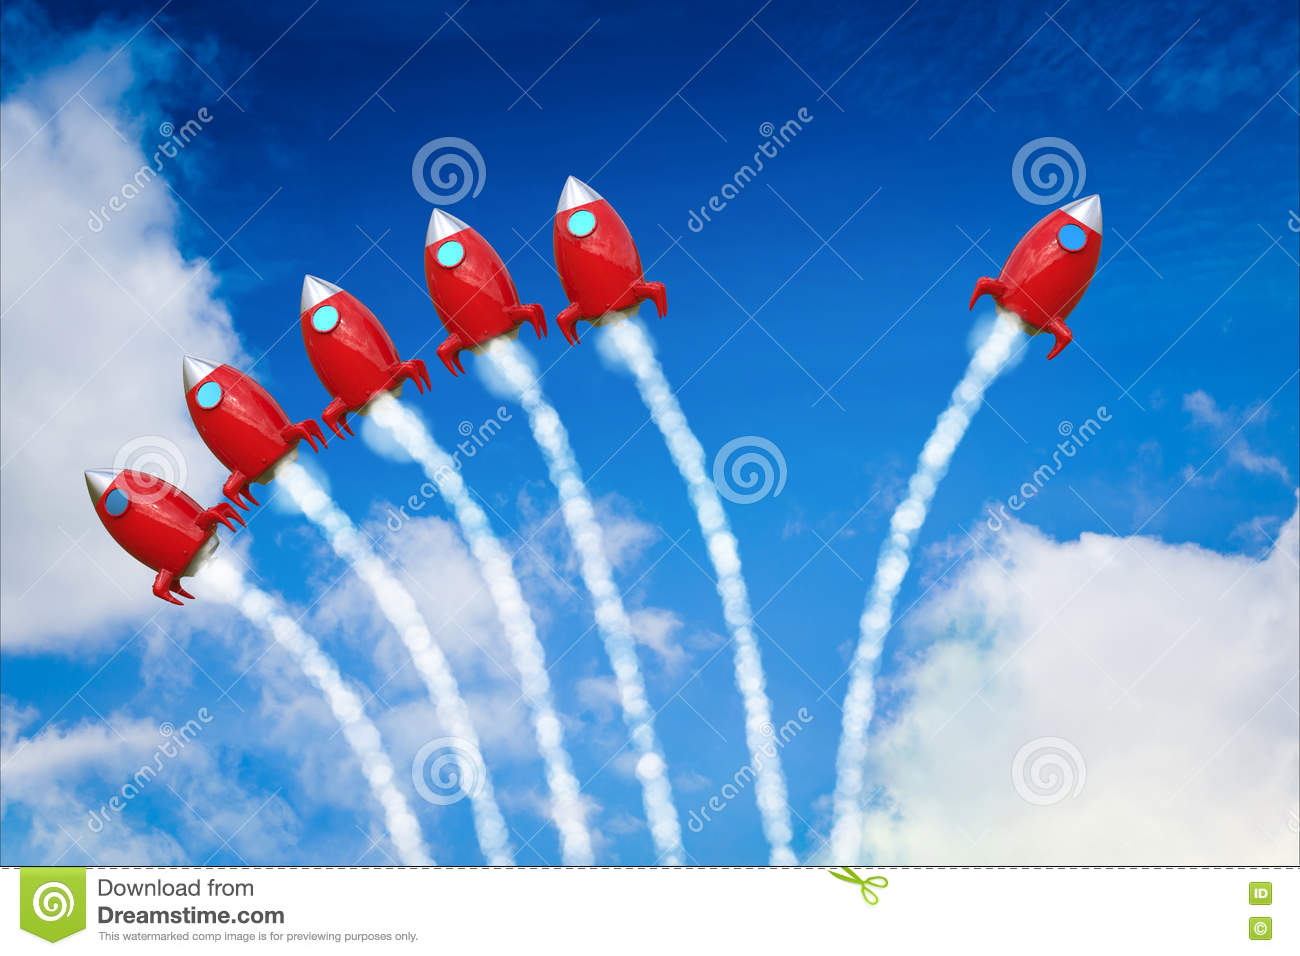 Leadership concept with red space shuttle launch